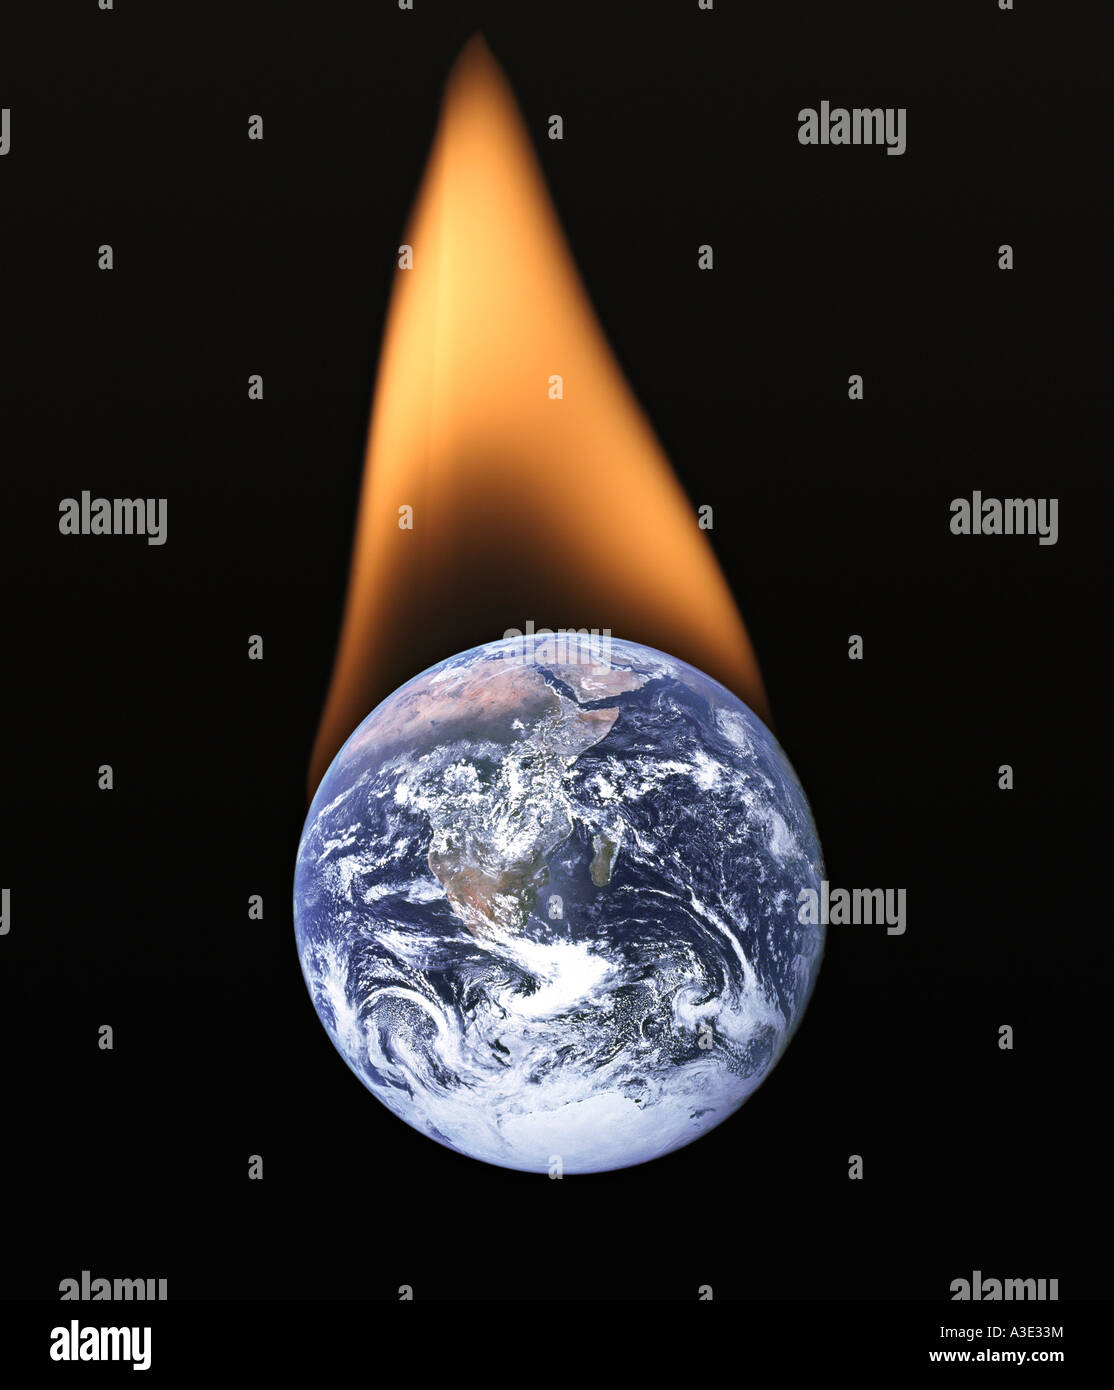 Flaming Planet Earth - Stock Image